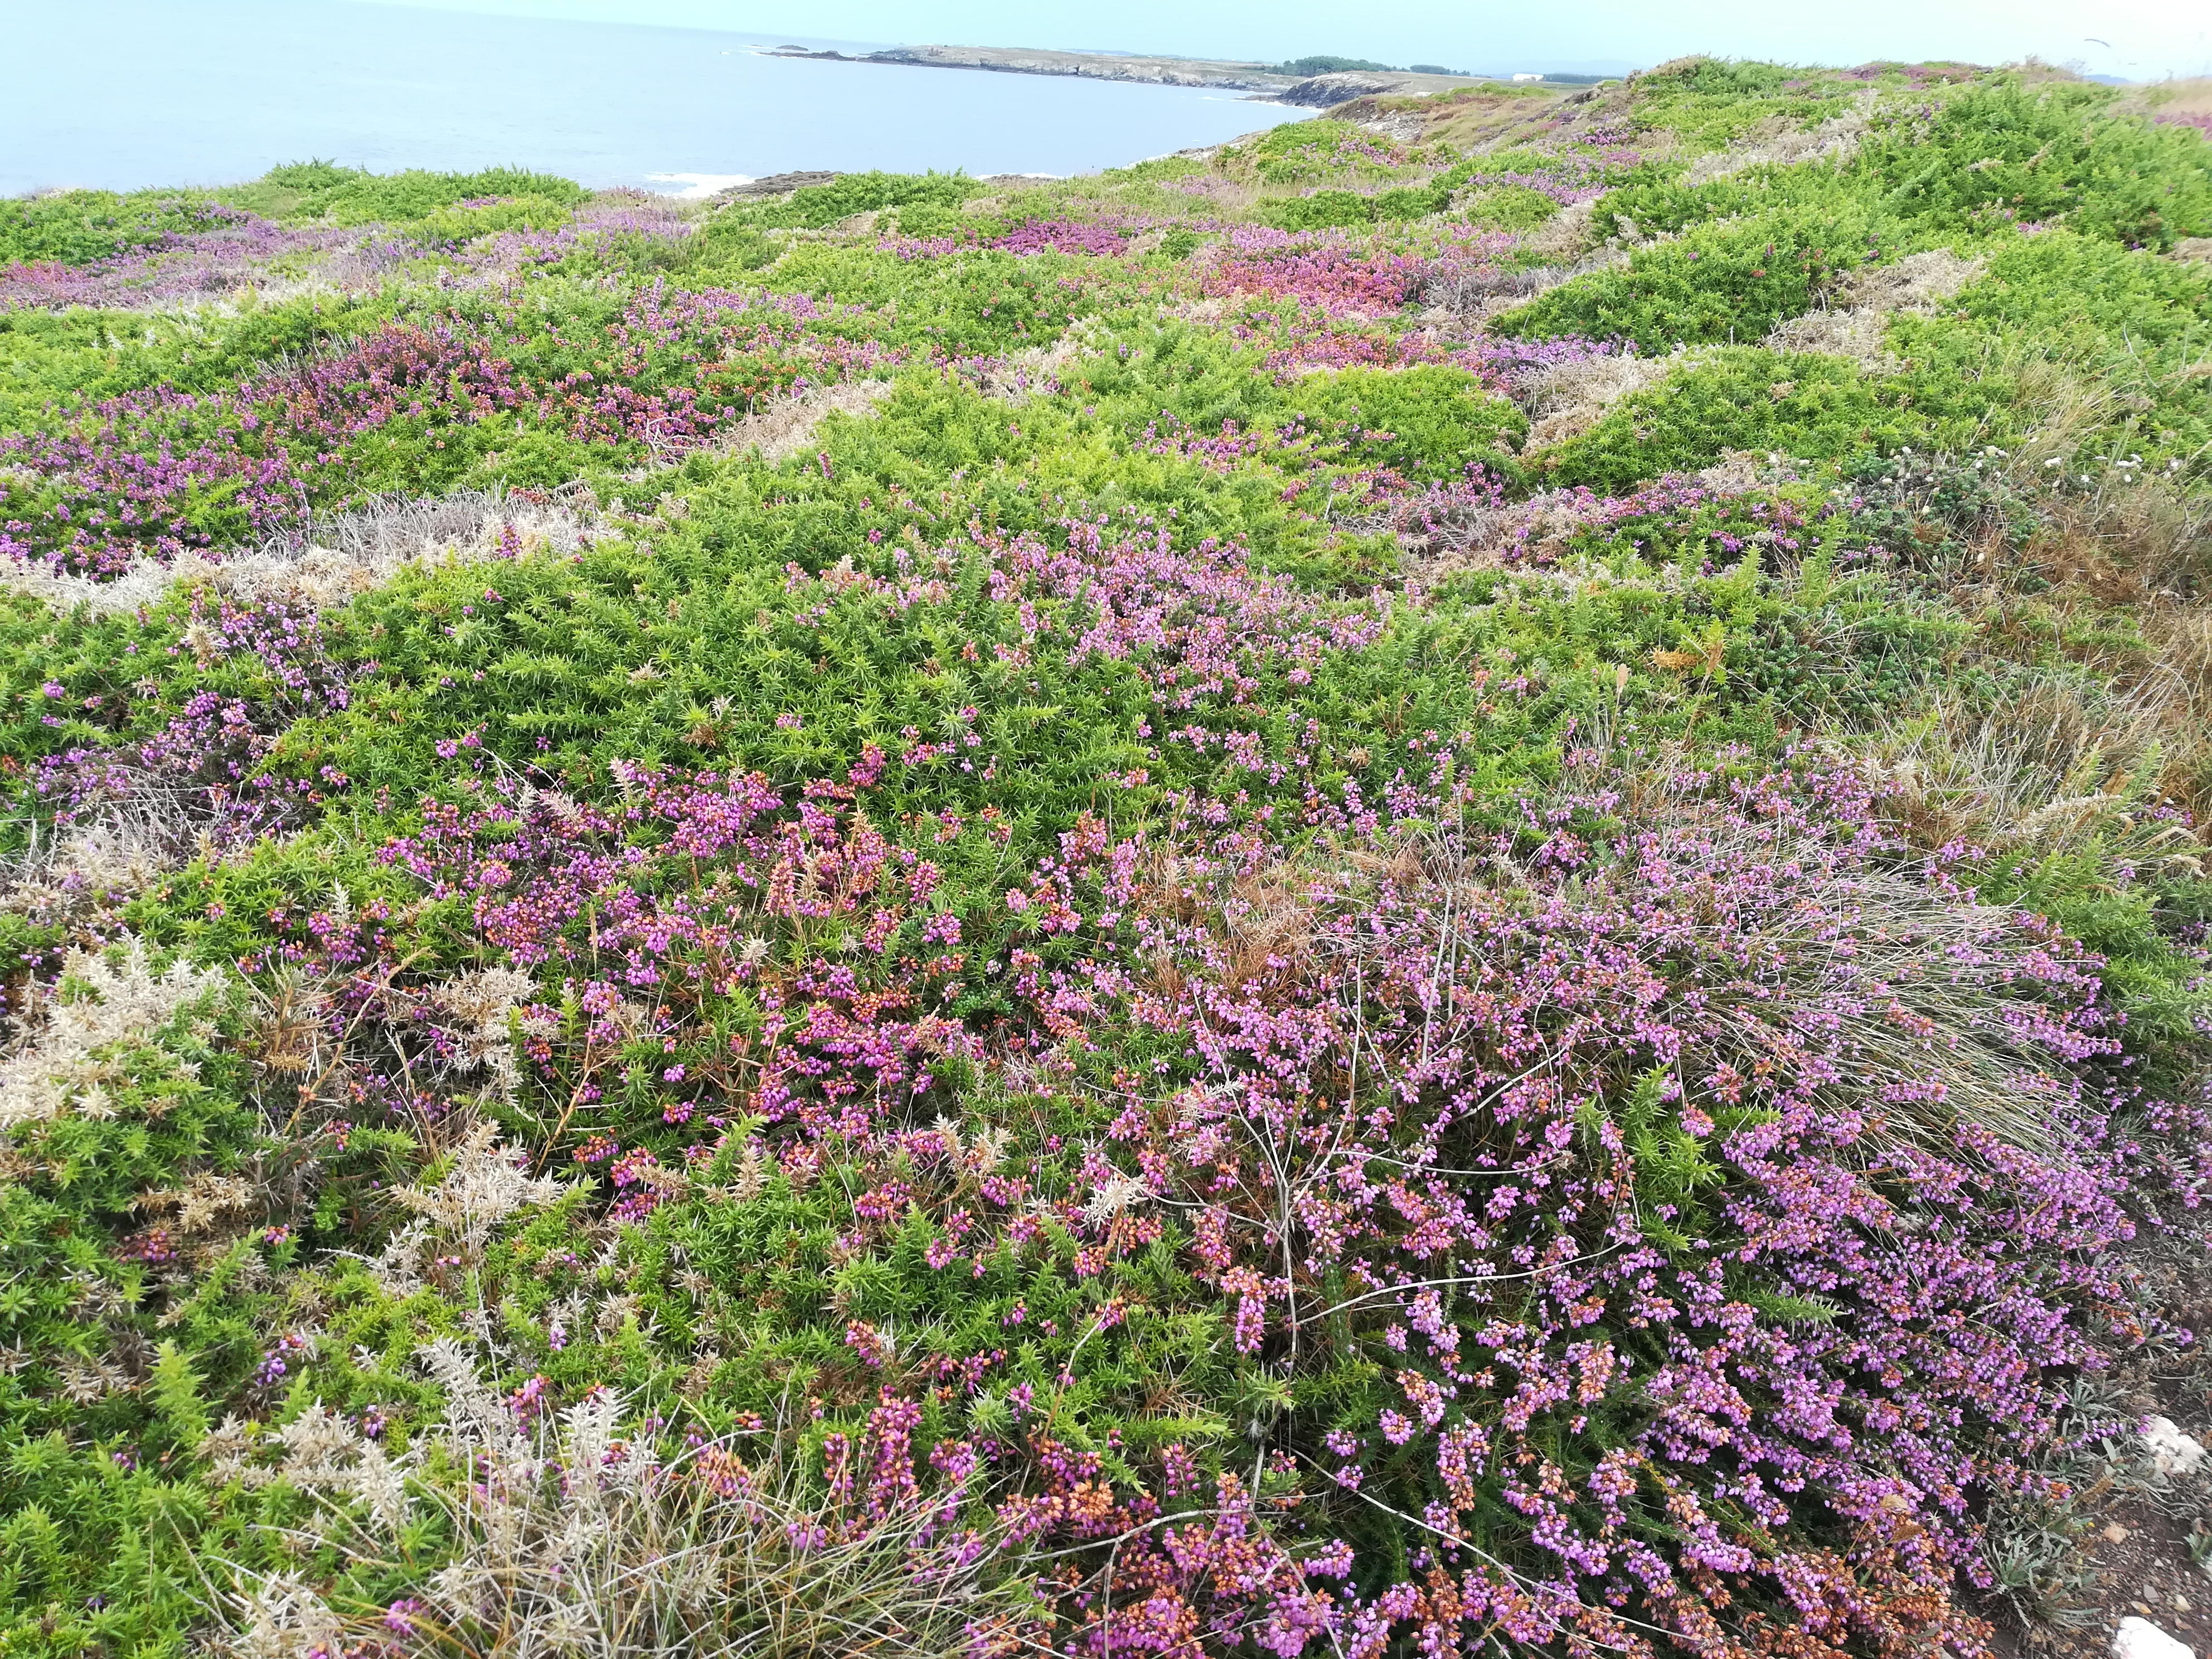 High density wild heather population (Calluna vulgaris) in Galicia (Spain). Source: GPAM-CTFC.